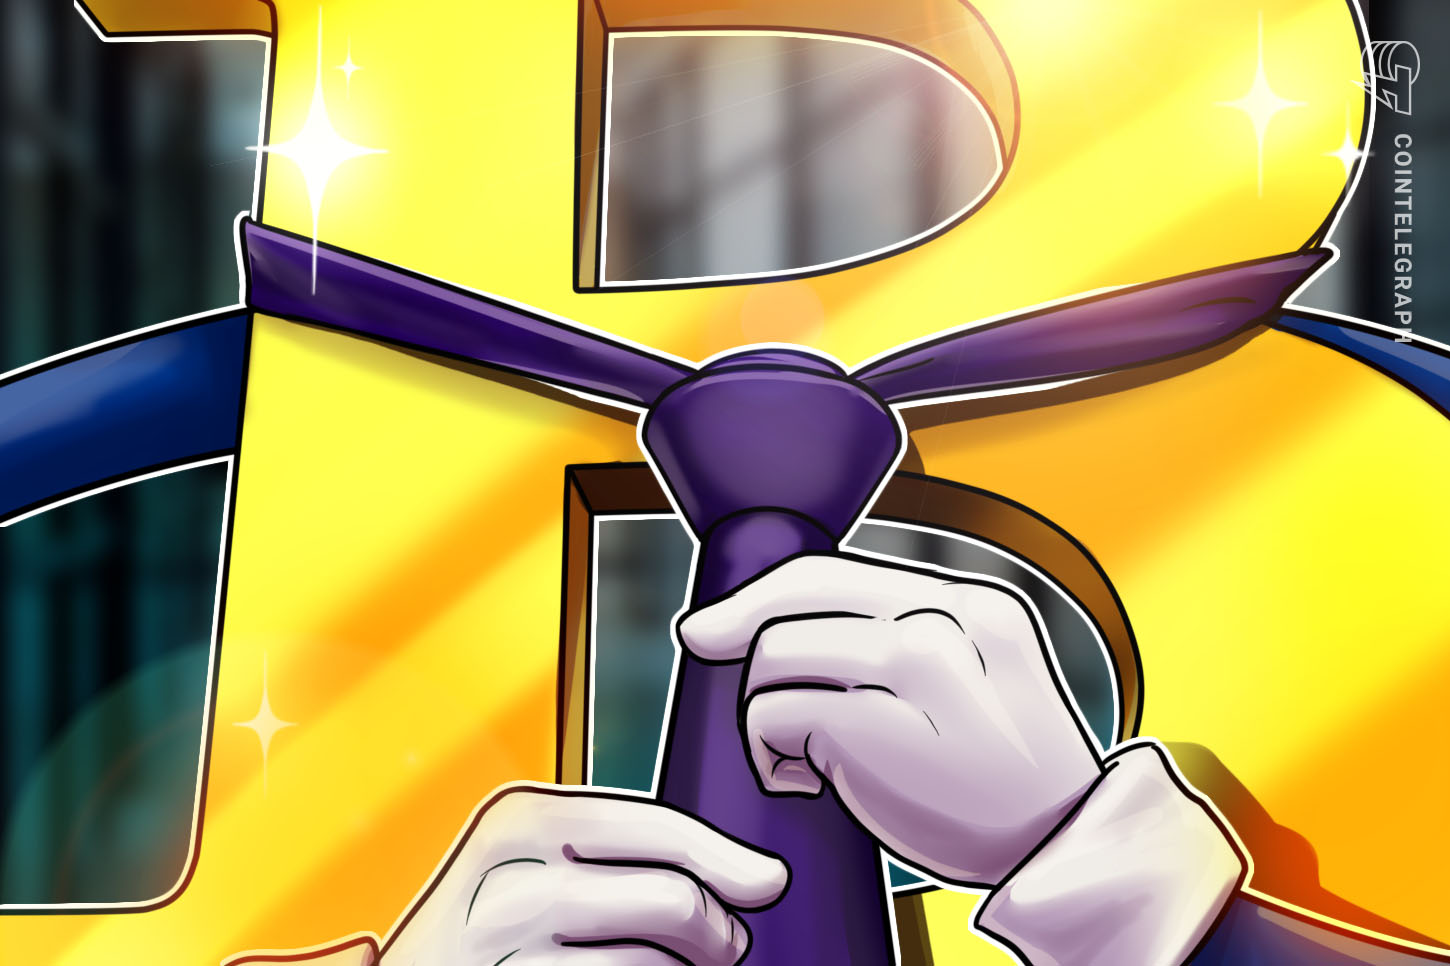 China's 3rd largest bank 'rugs' BTC: 5 things to watch in Bitcoin this week